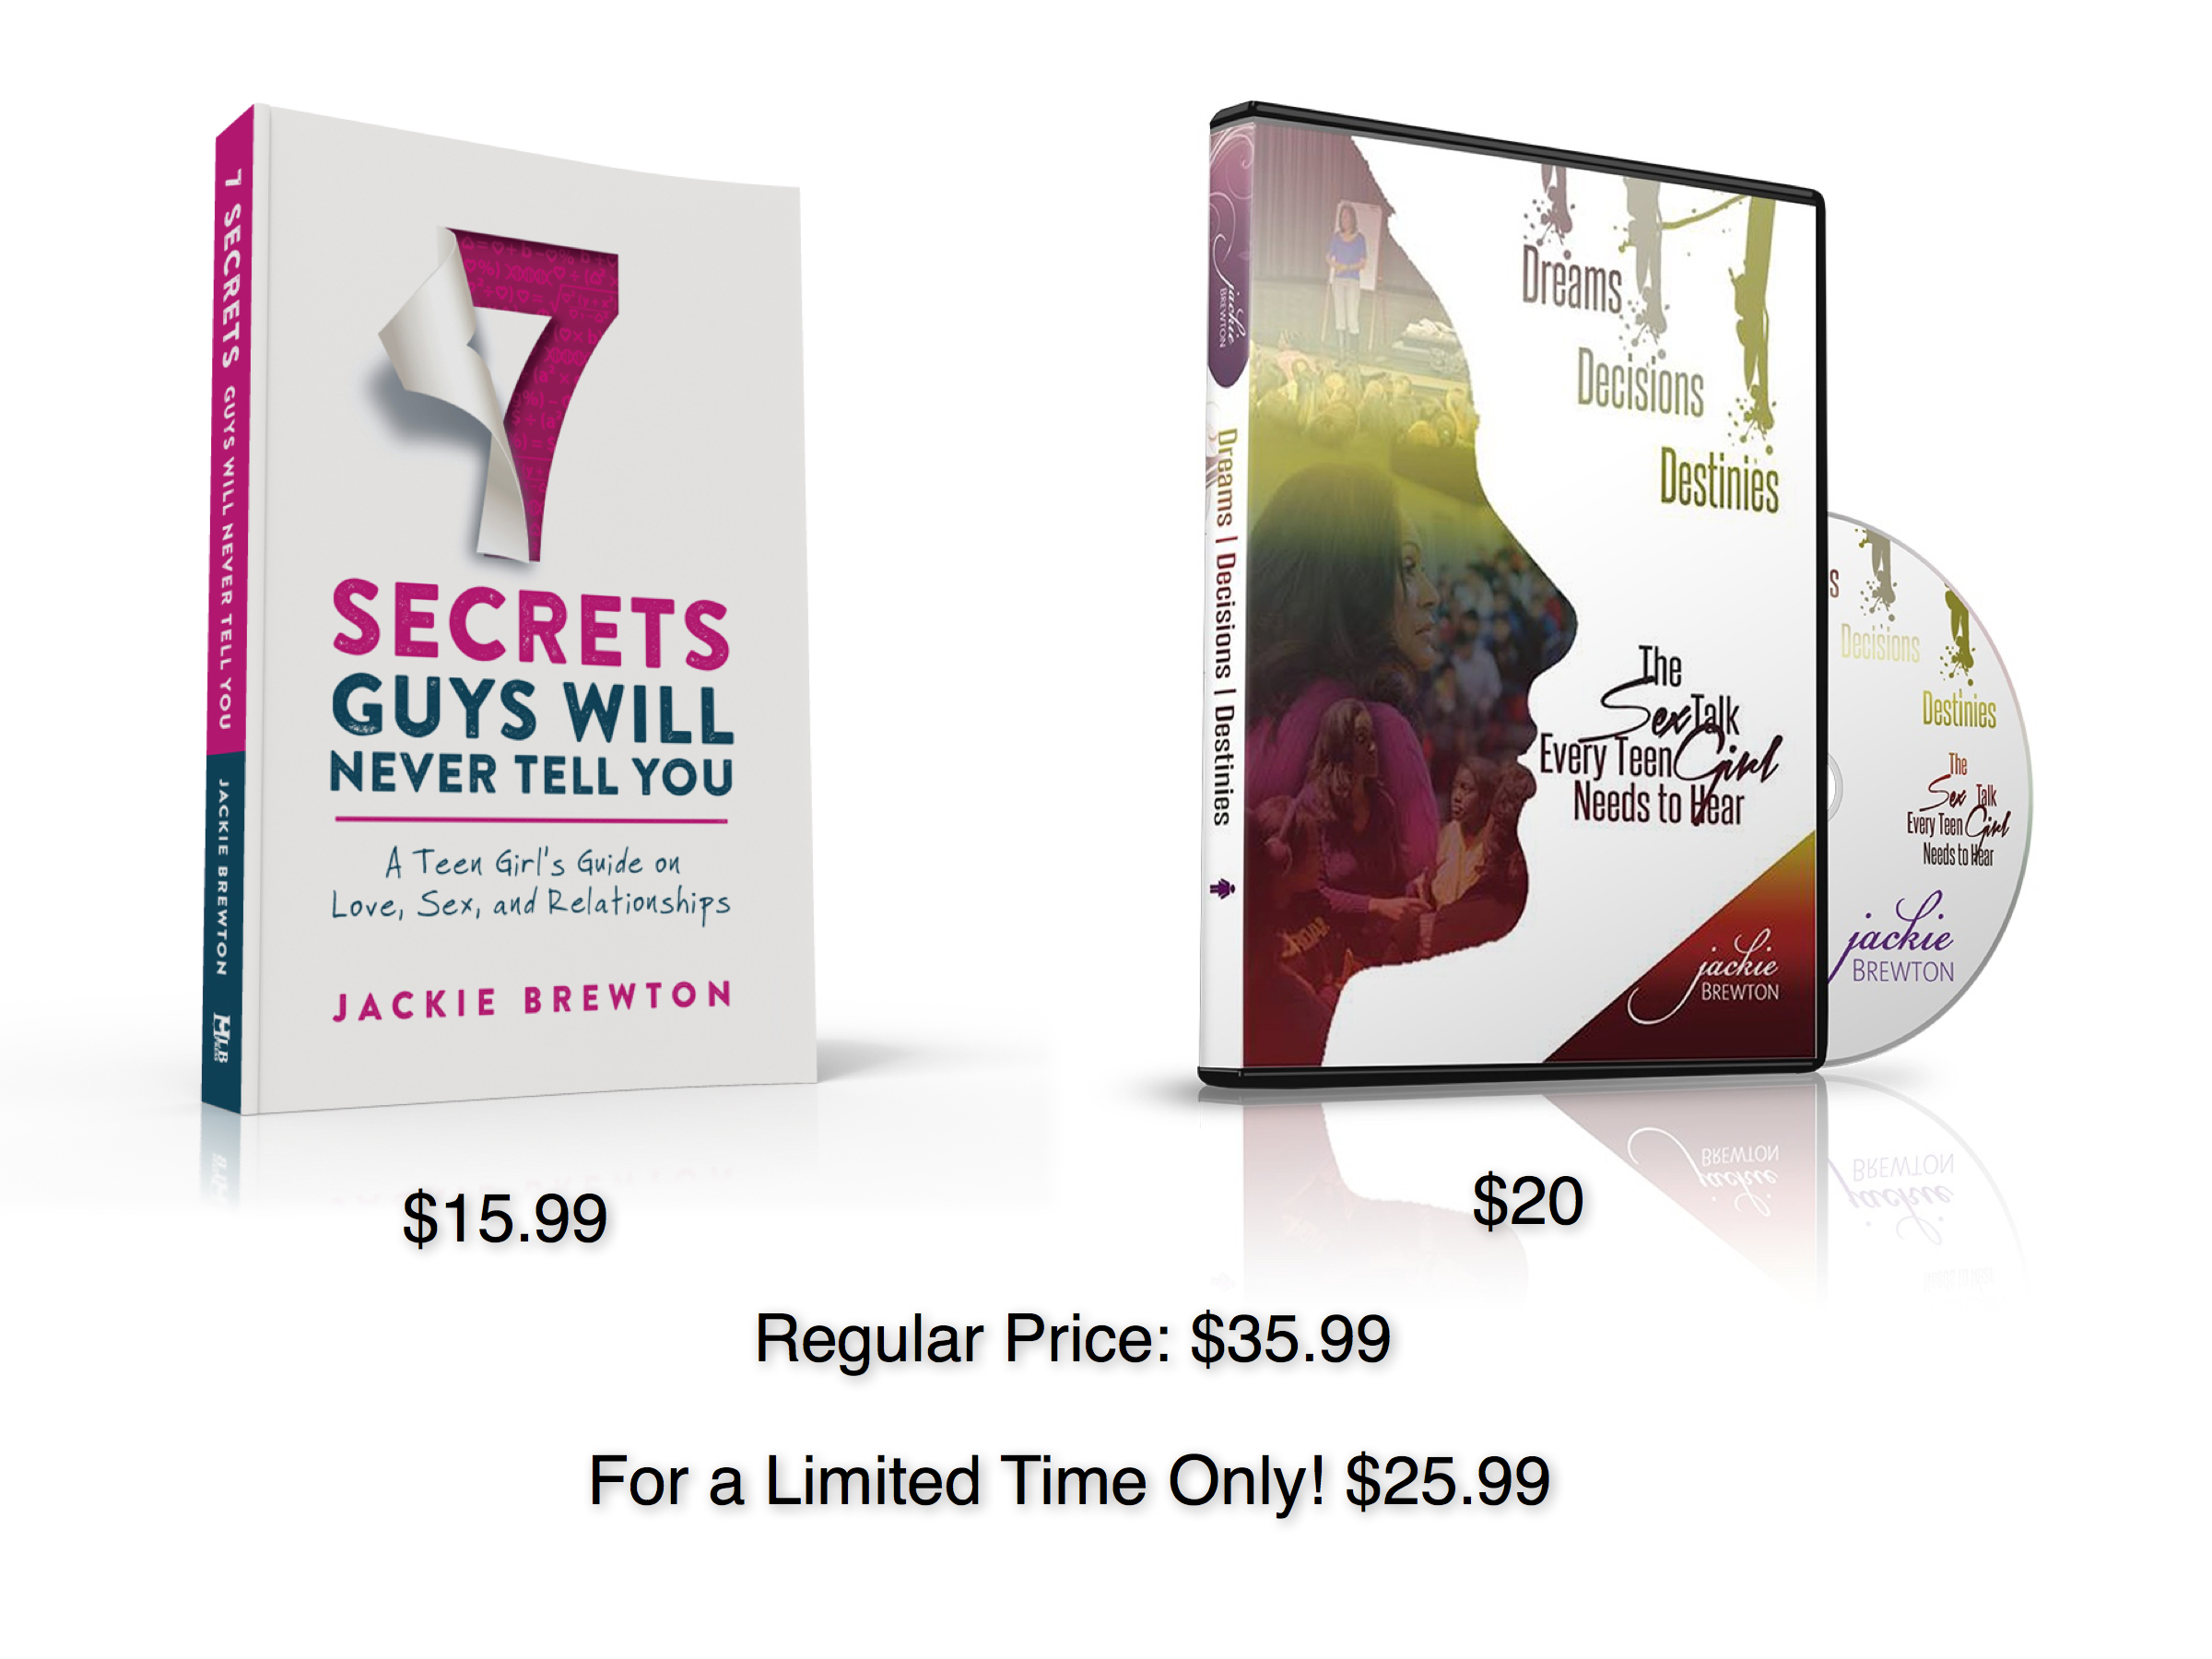 Book and DVD w:prices2